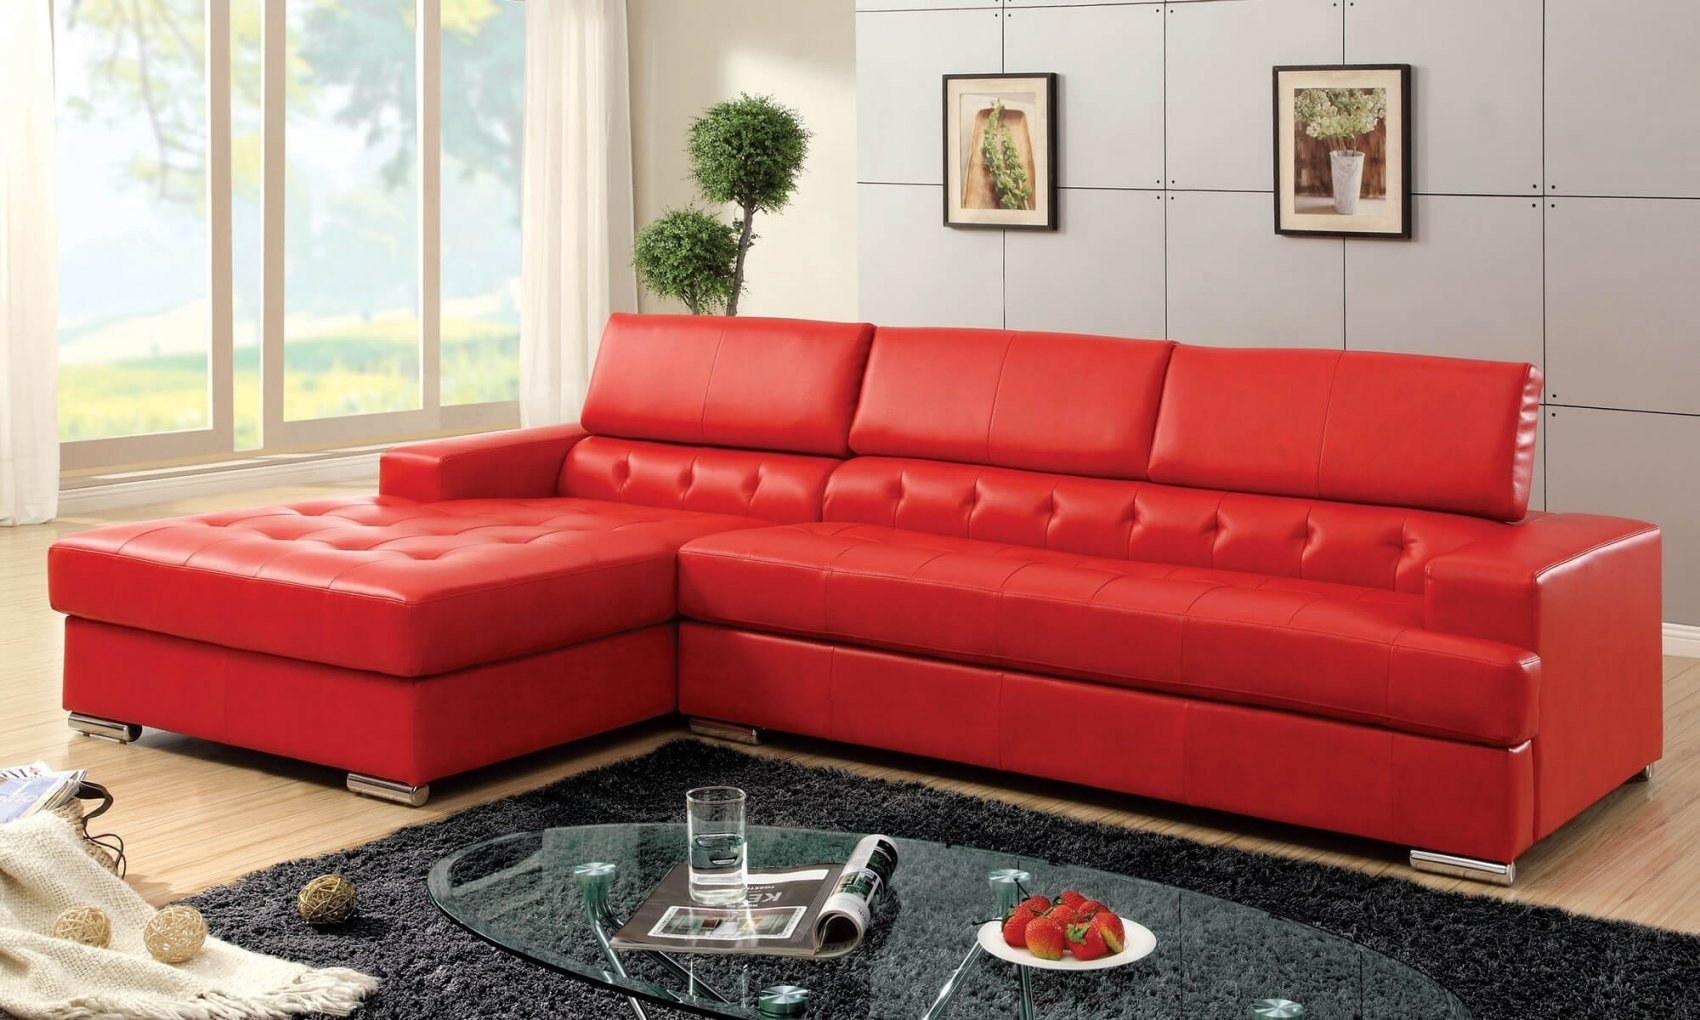 Red Leather Sectional Sofa Contemporary – Best Sectional In In Red Leather Sectional Couches (View 3 of 10)